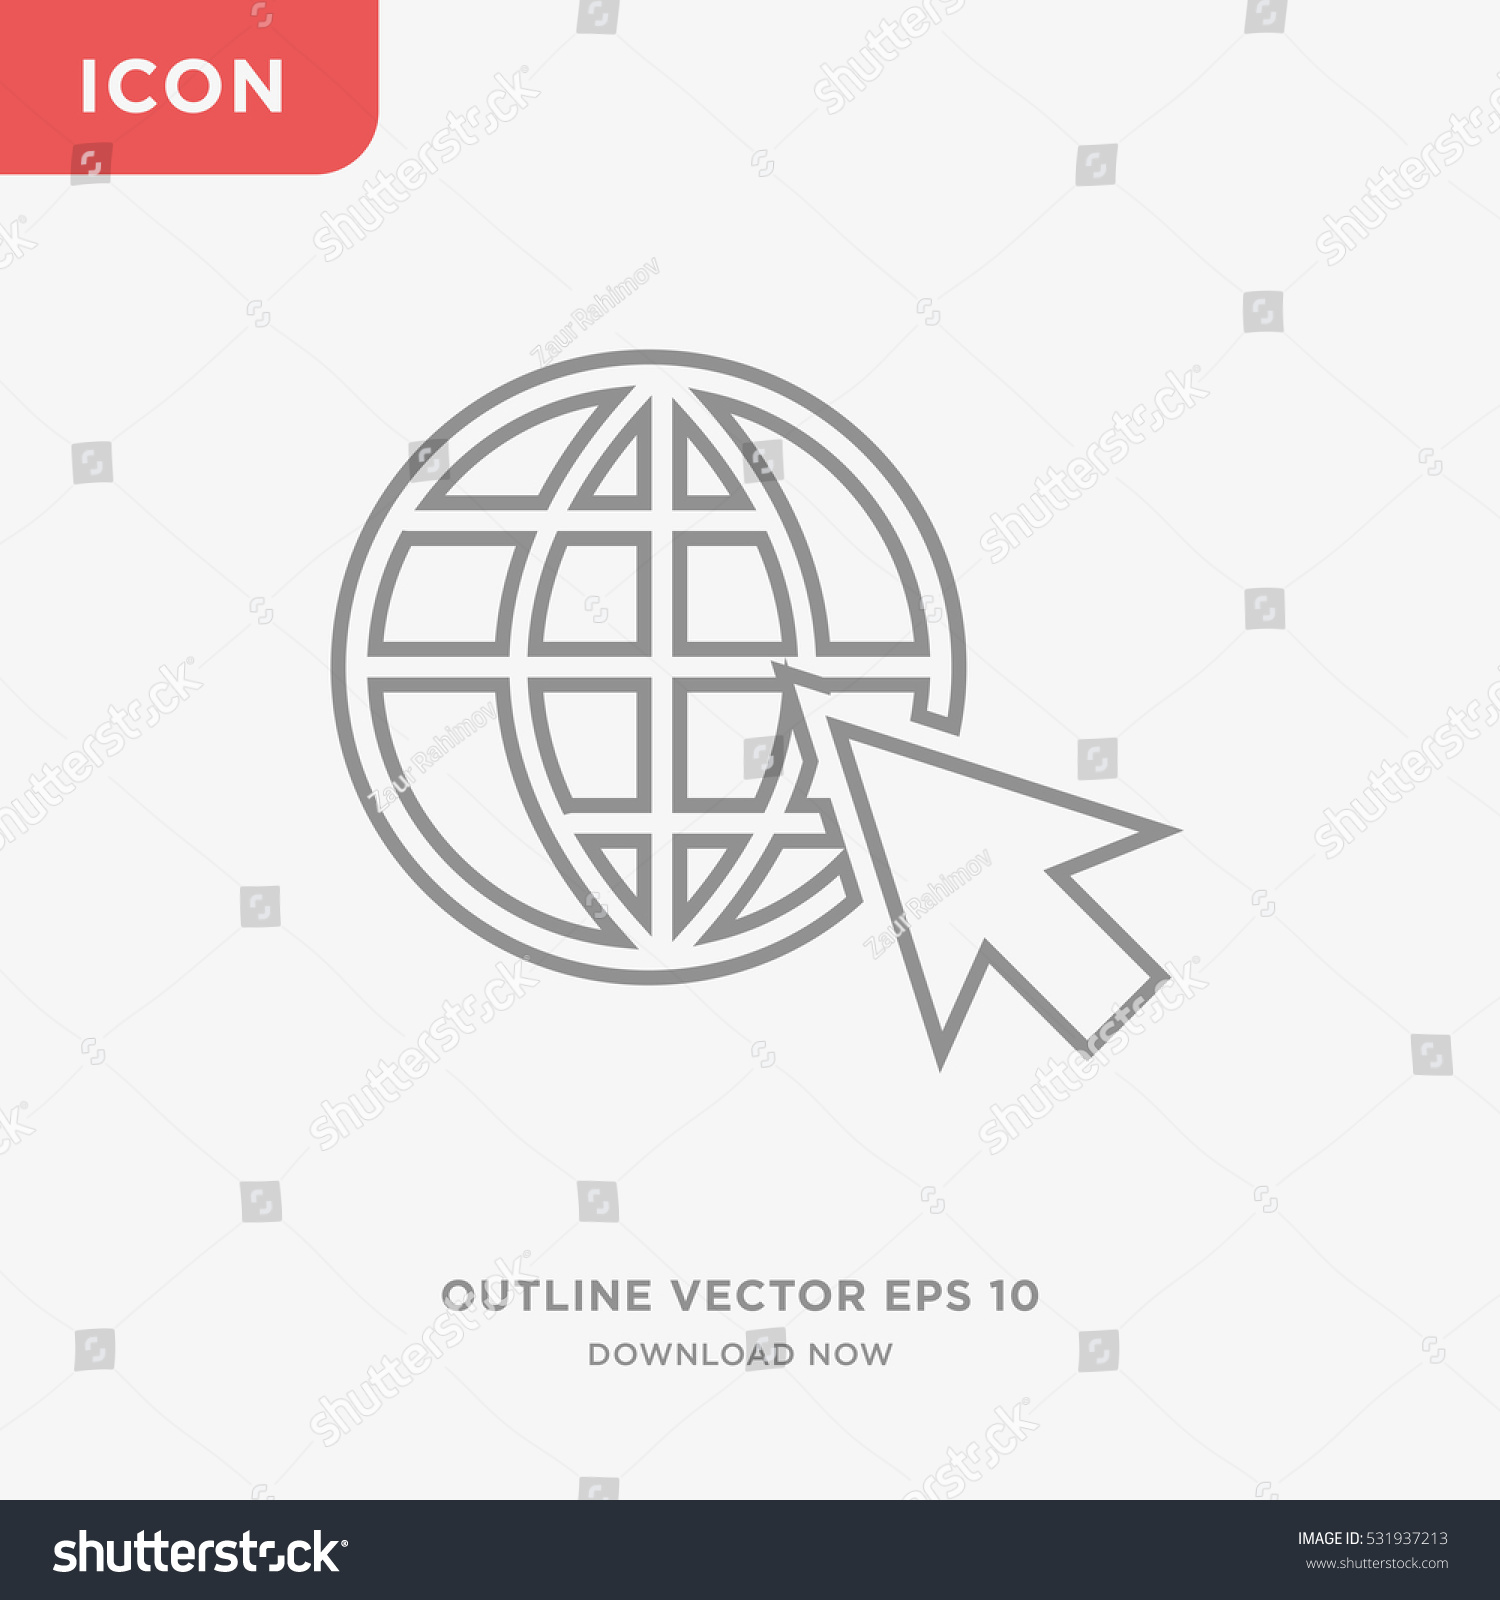 World globe mouse cursive icon illustration stock vector 531937213 world globe and mouse cursive icon illustration isolated vector sign symbol biocorpaavc Image collections